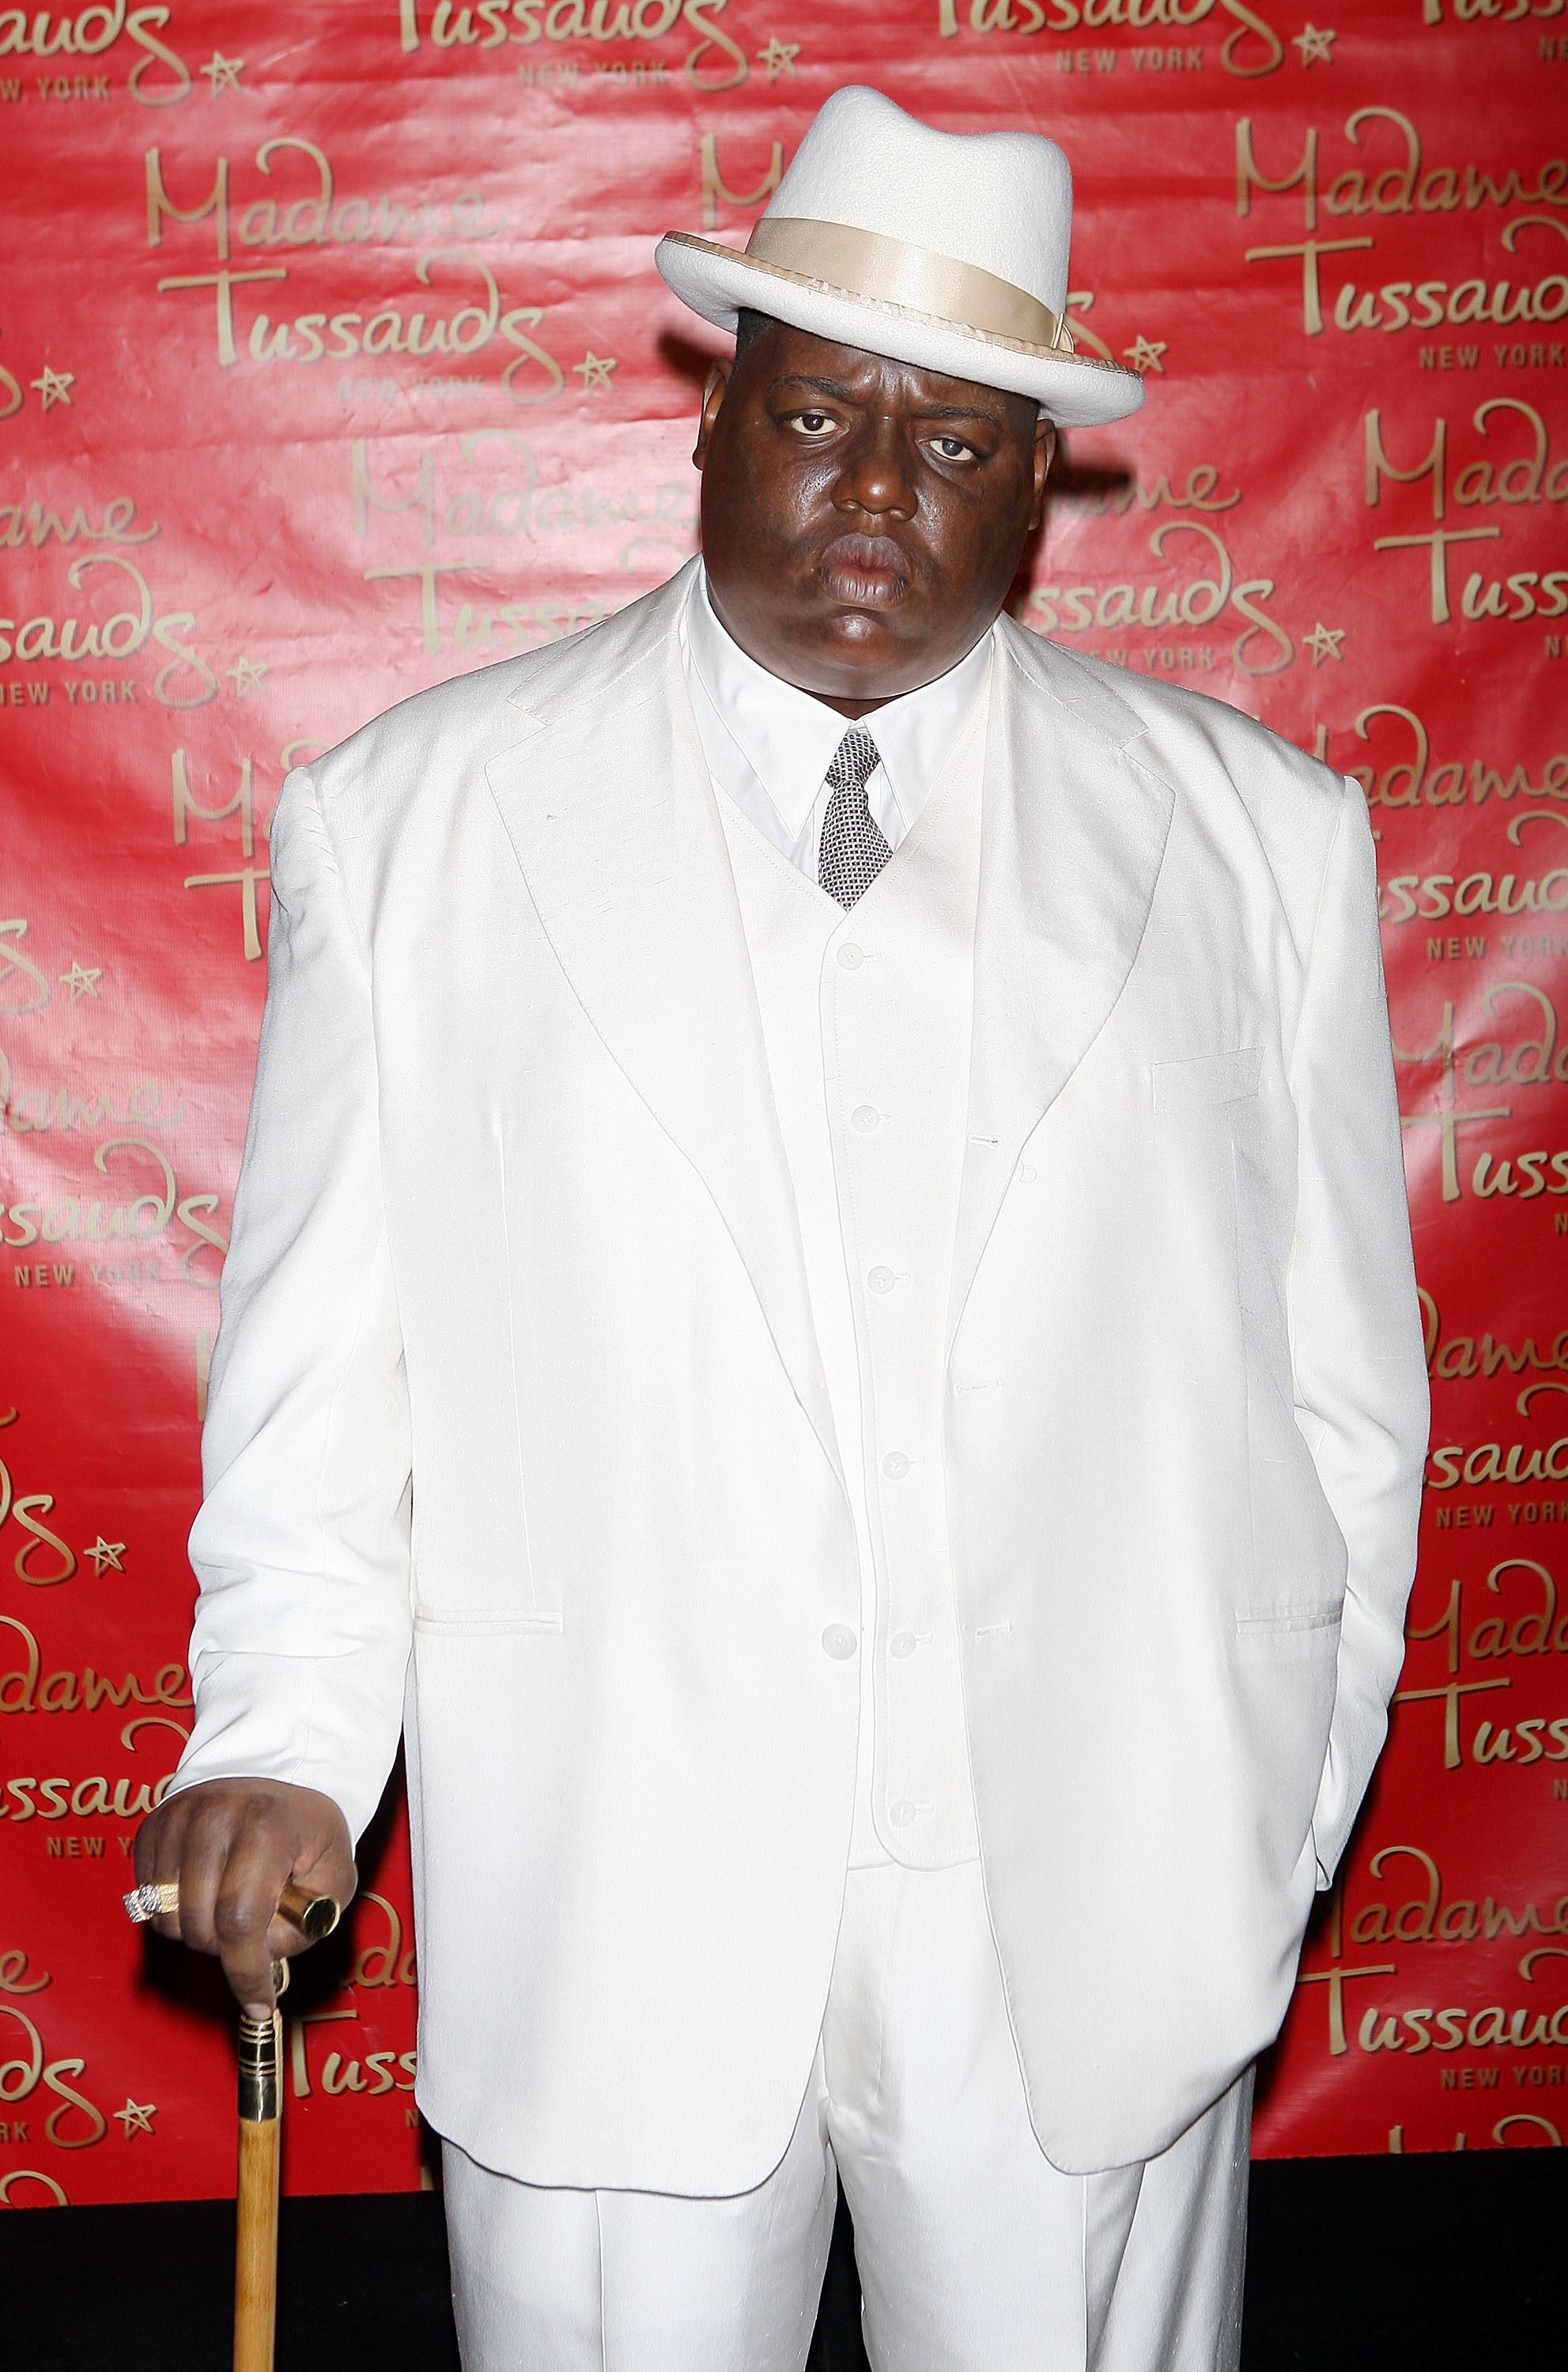 A wax figure of Christopher 'Biggie Smalls' Wallace on display in Times Square on October 25, 2007. | Photo: Getty Images